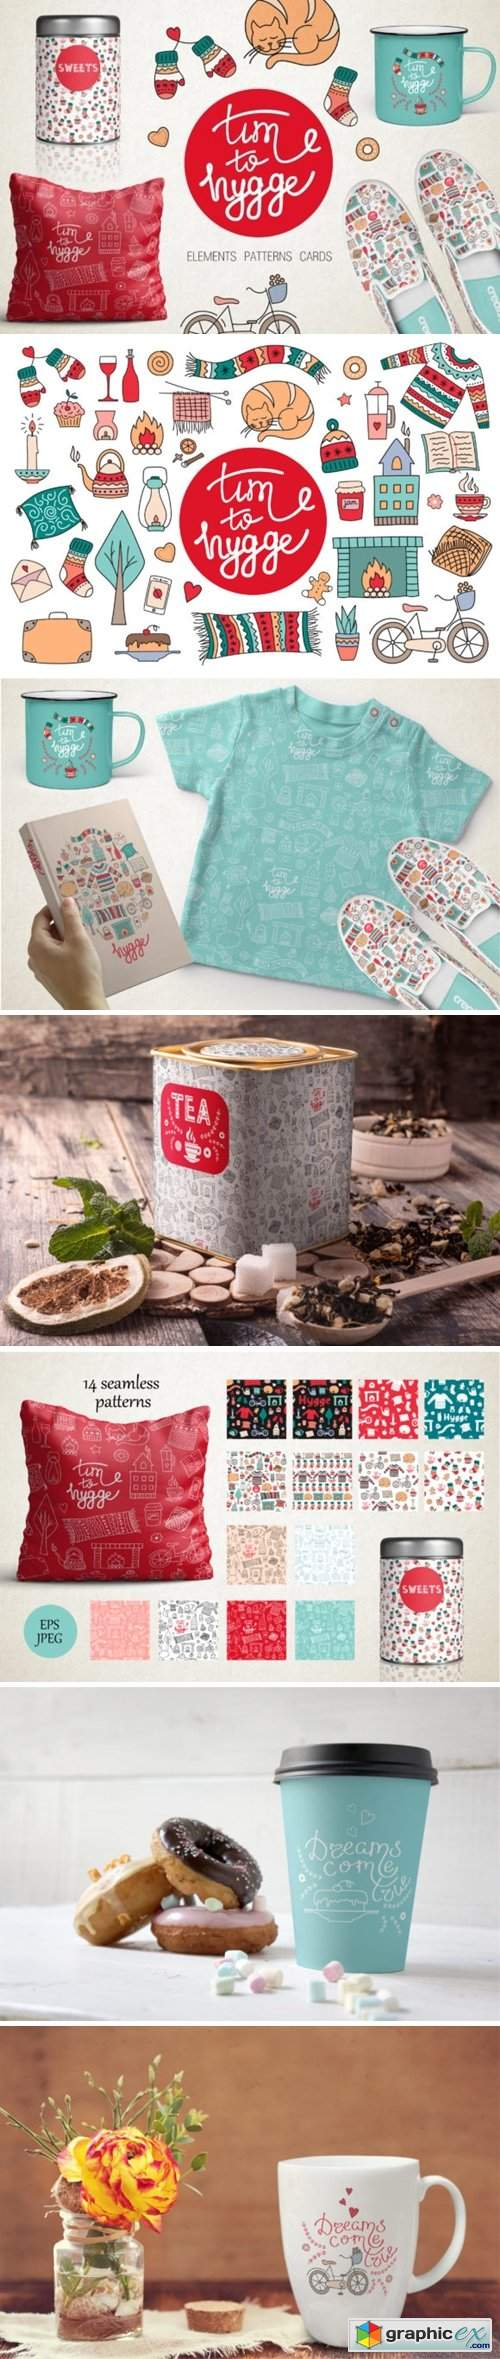 Hygge Collection 1948632